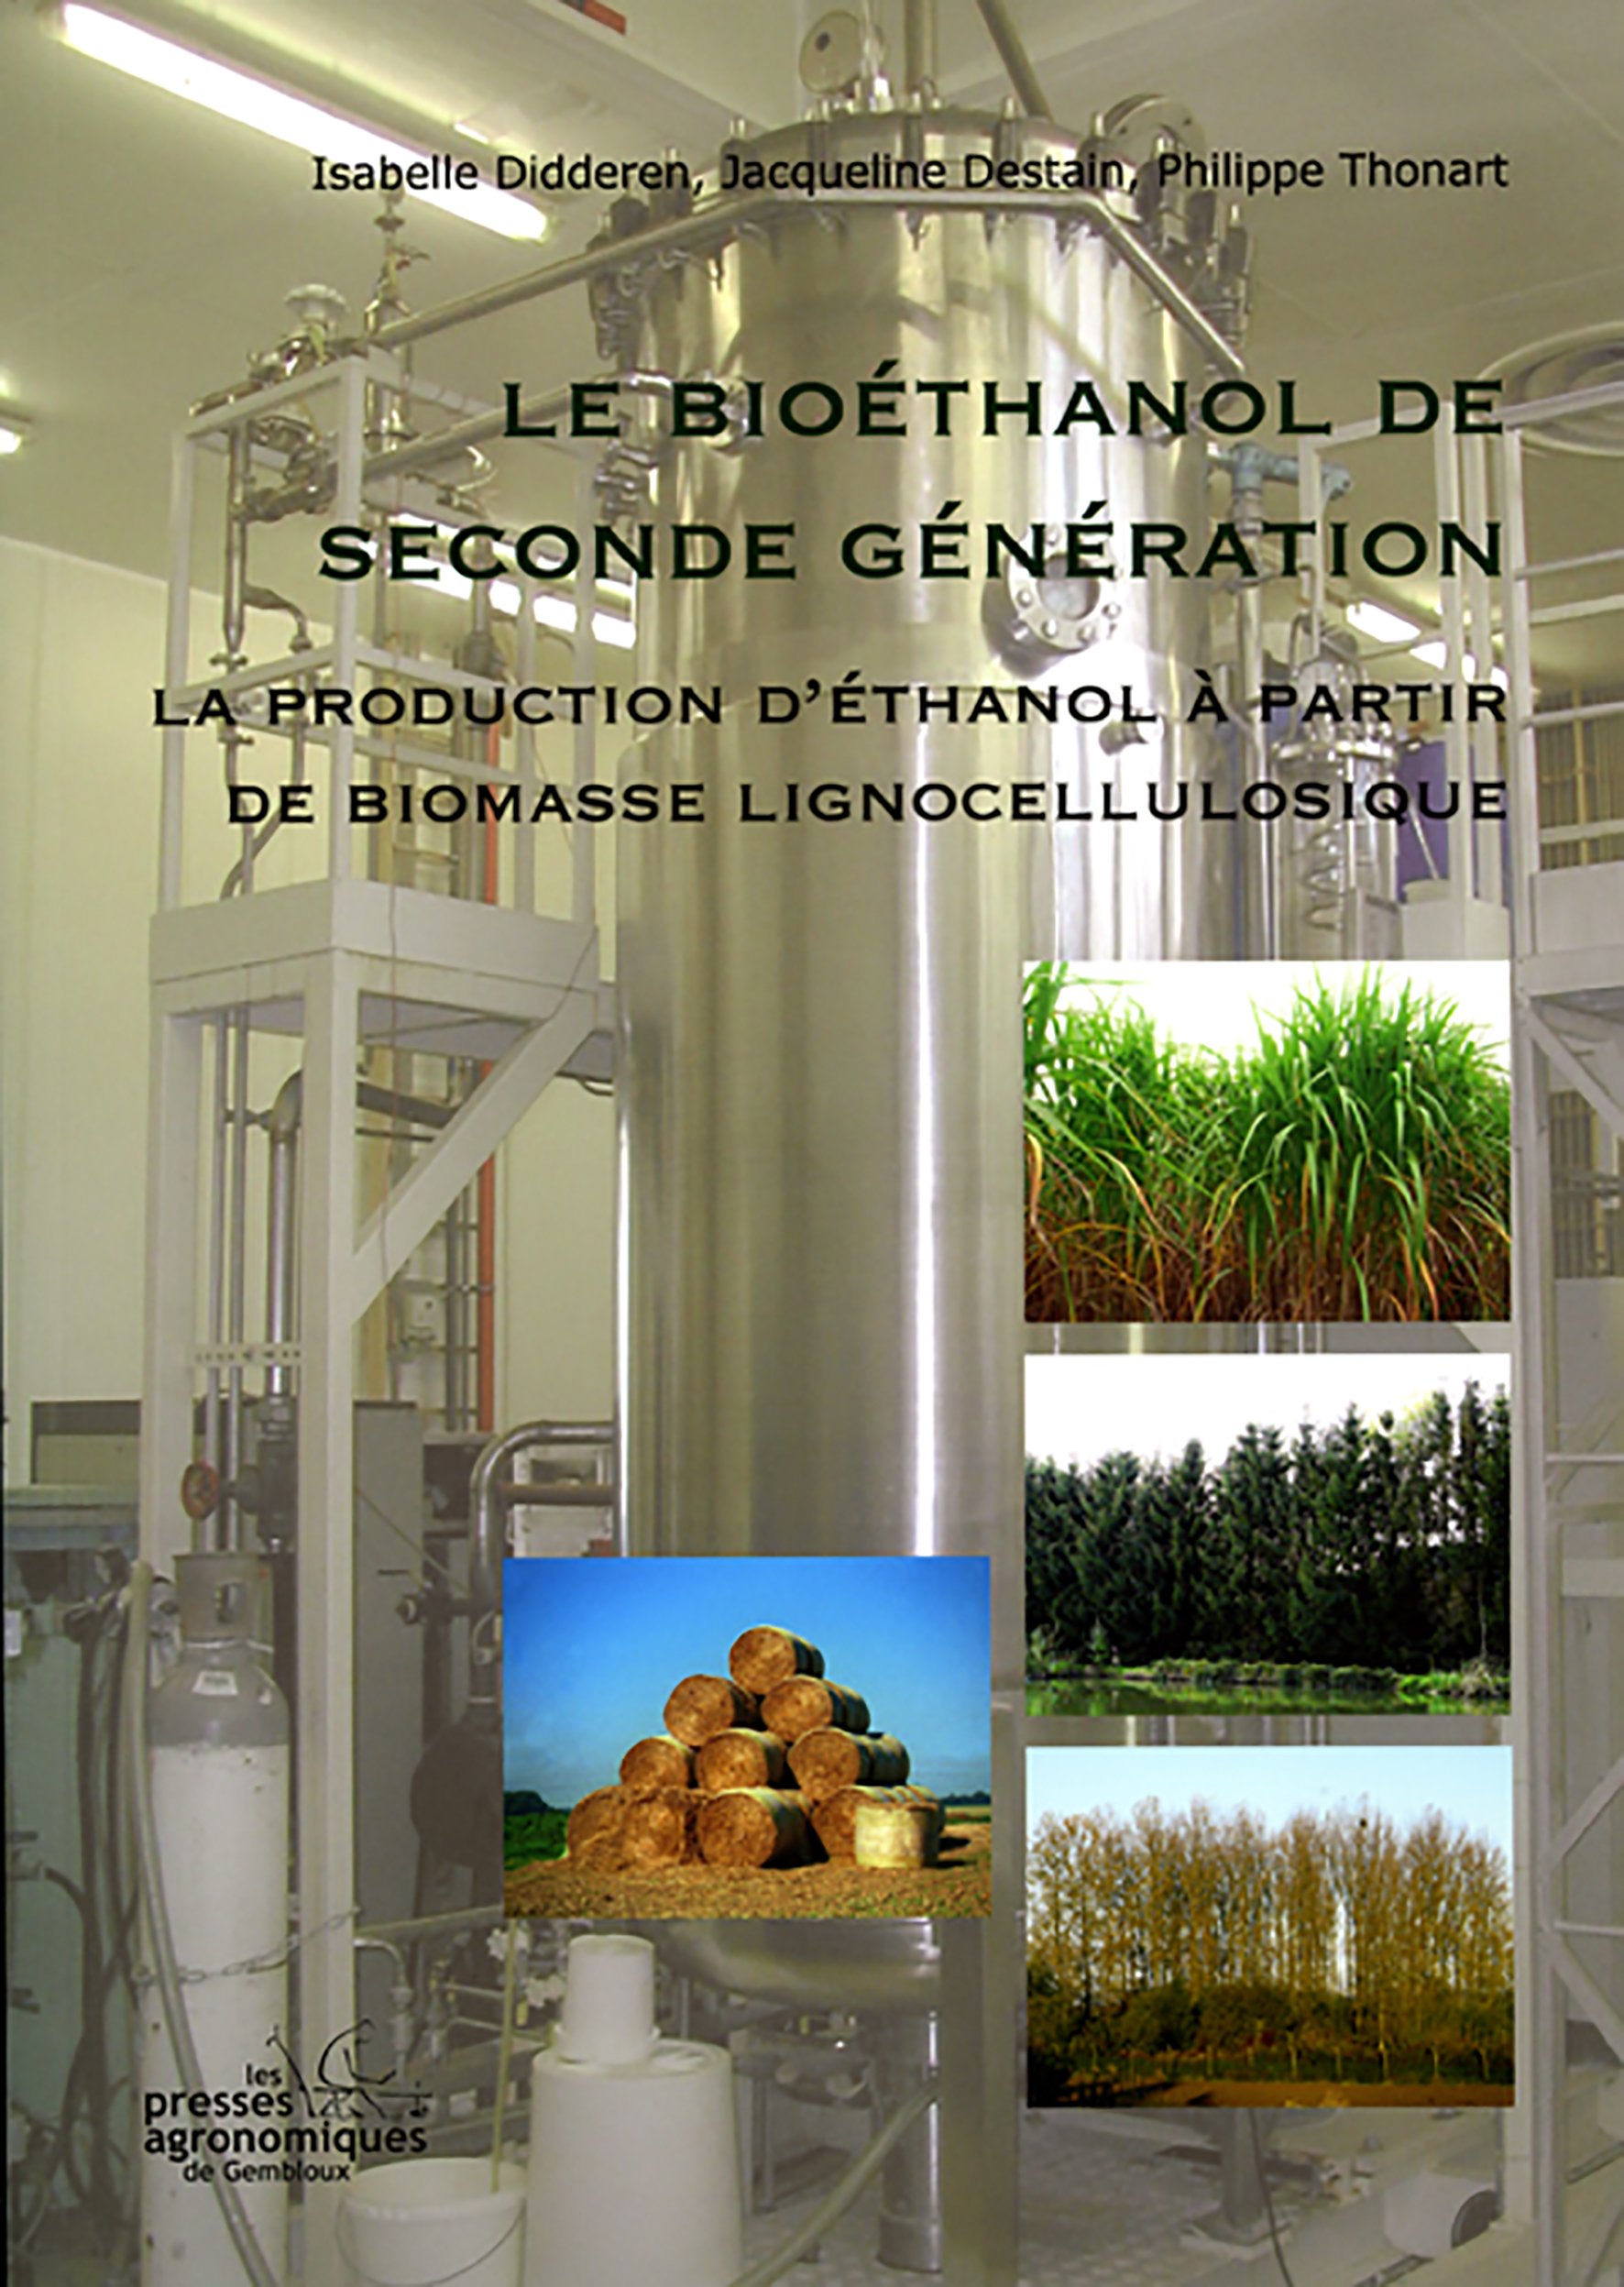 LE BIOETHANOL DE SECONDE GENERATION. LA PRODUCTION D'ETHANOL A PARTIR DE BIOMASSE LIGNOCELLULOSIQUE